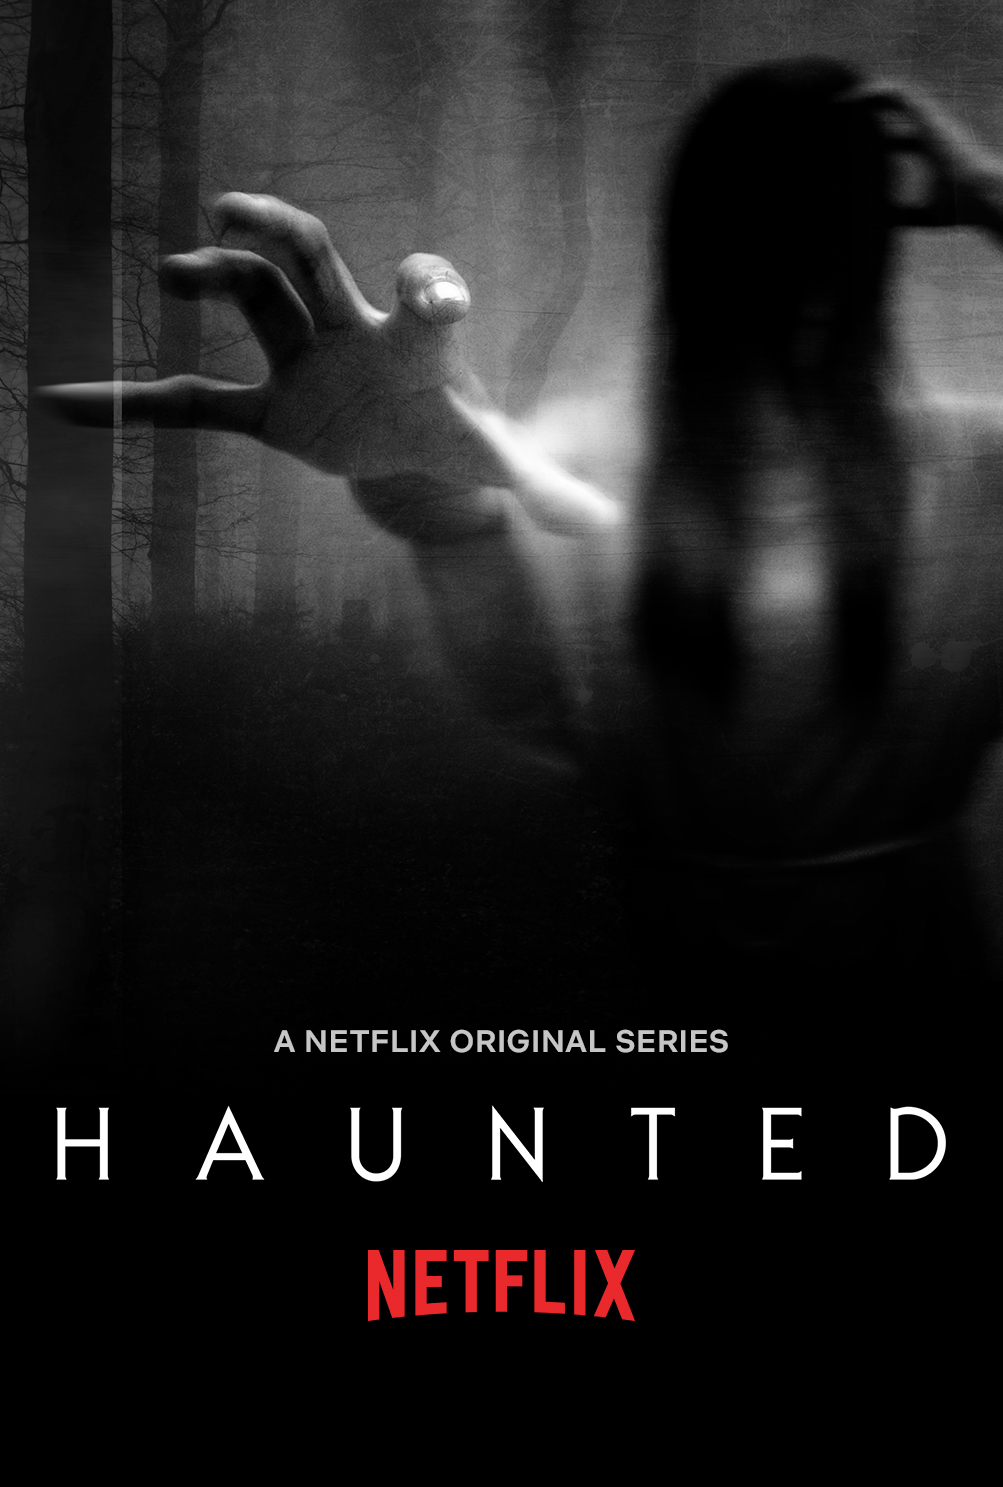 Image result for Netflix Haunted